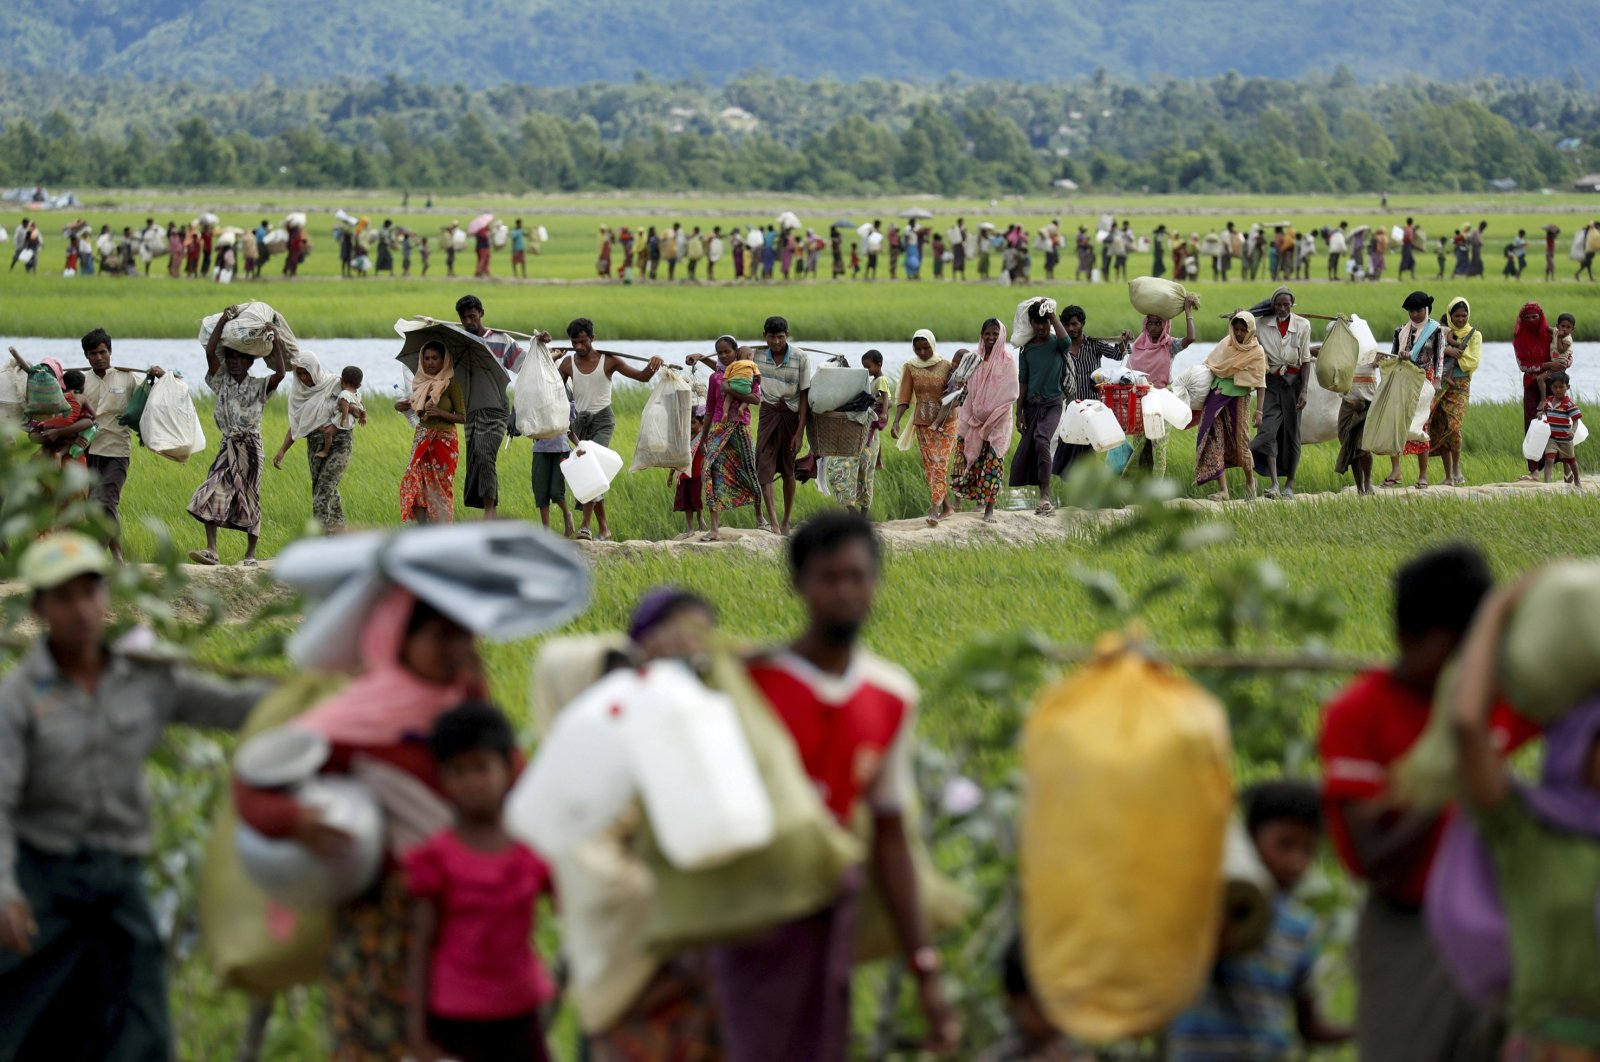 Rohingya refugees, who crossed the border from Myanmar two days before, walk after they received permission from the Bangladeshi army to continue on to the refugee camps, in Palang Khali, Bangladesh, Oct. 19, 2017. (Reuters Photo)